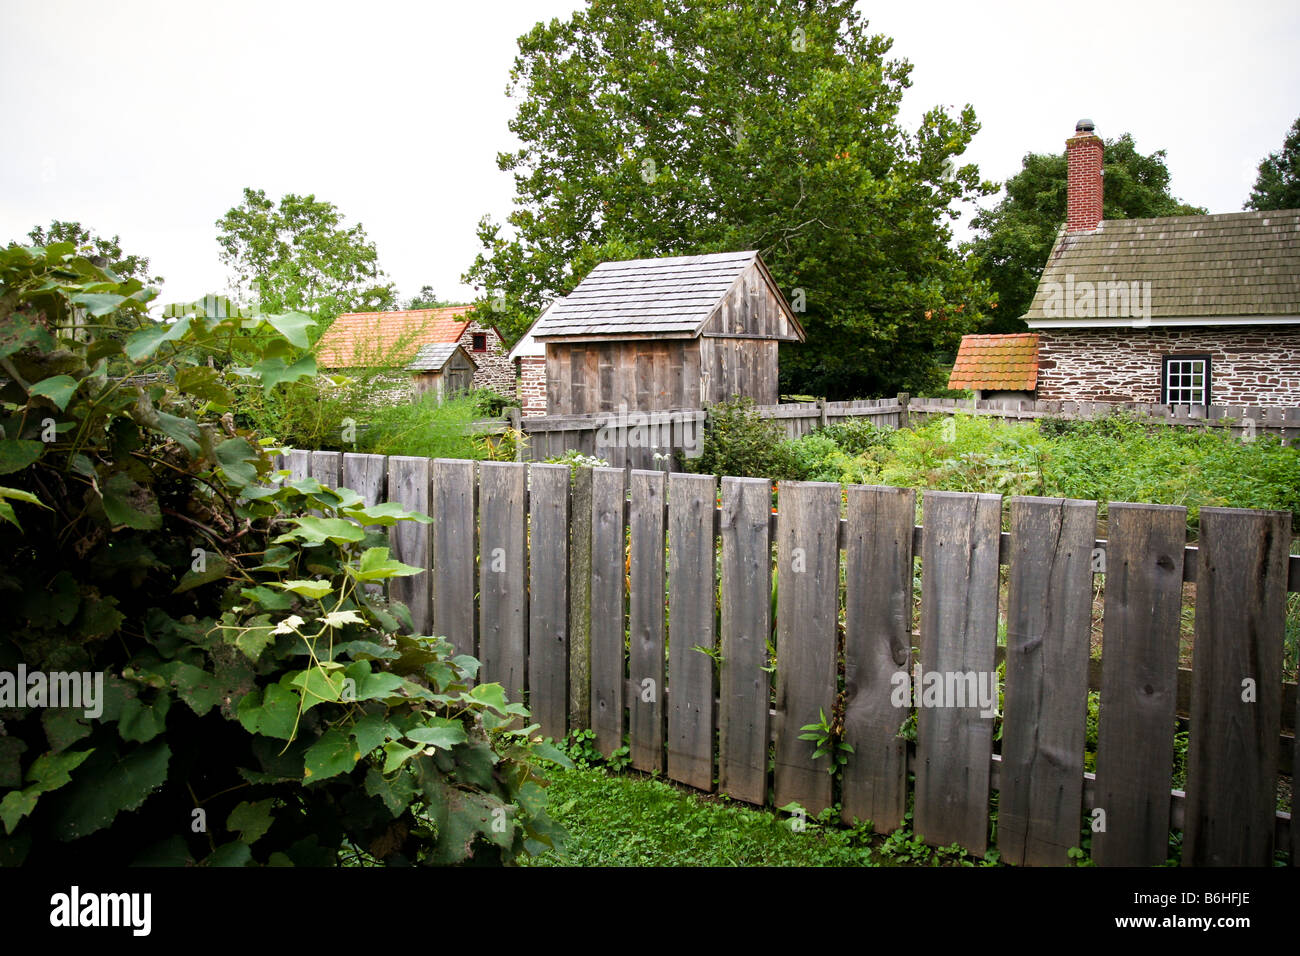 Kitchen Garden Fence Kitchen Garden Area Of An Old 18th Century Farmstead With A Rustic